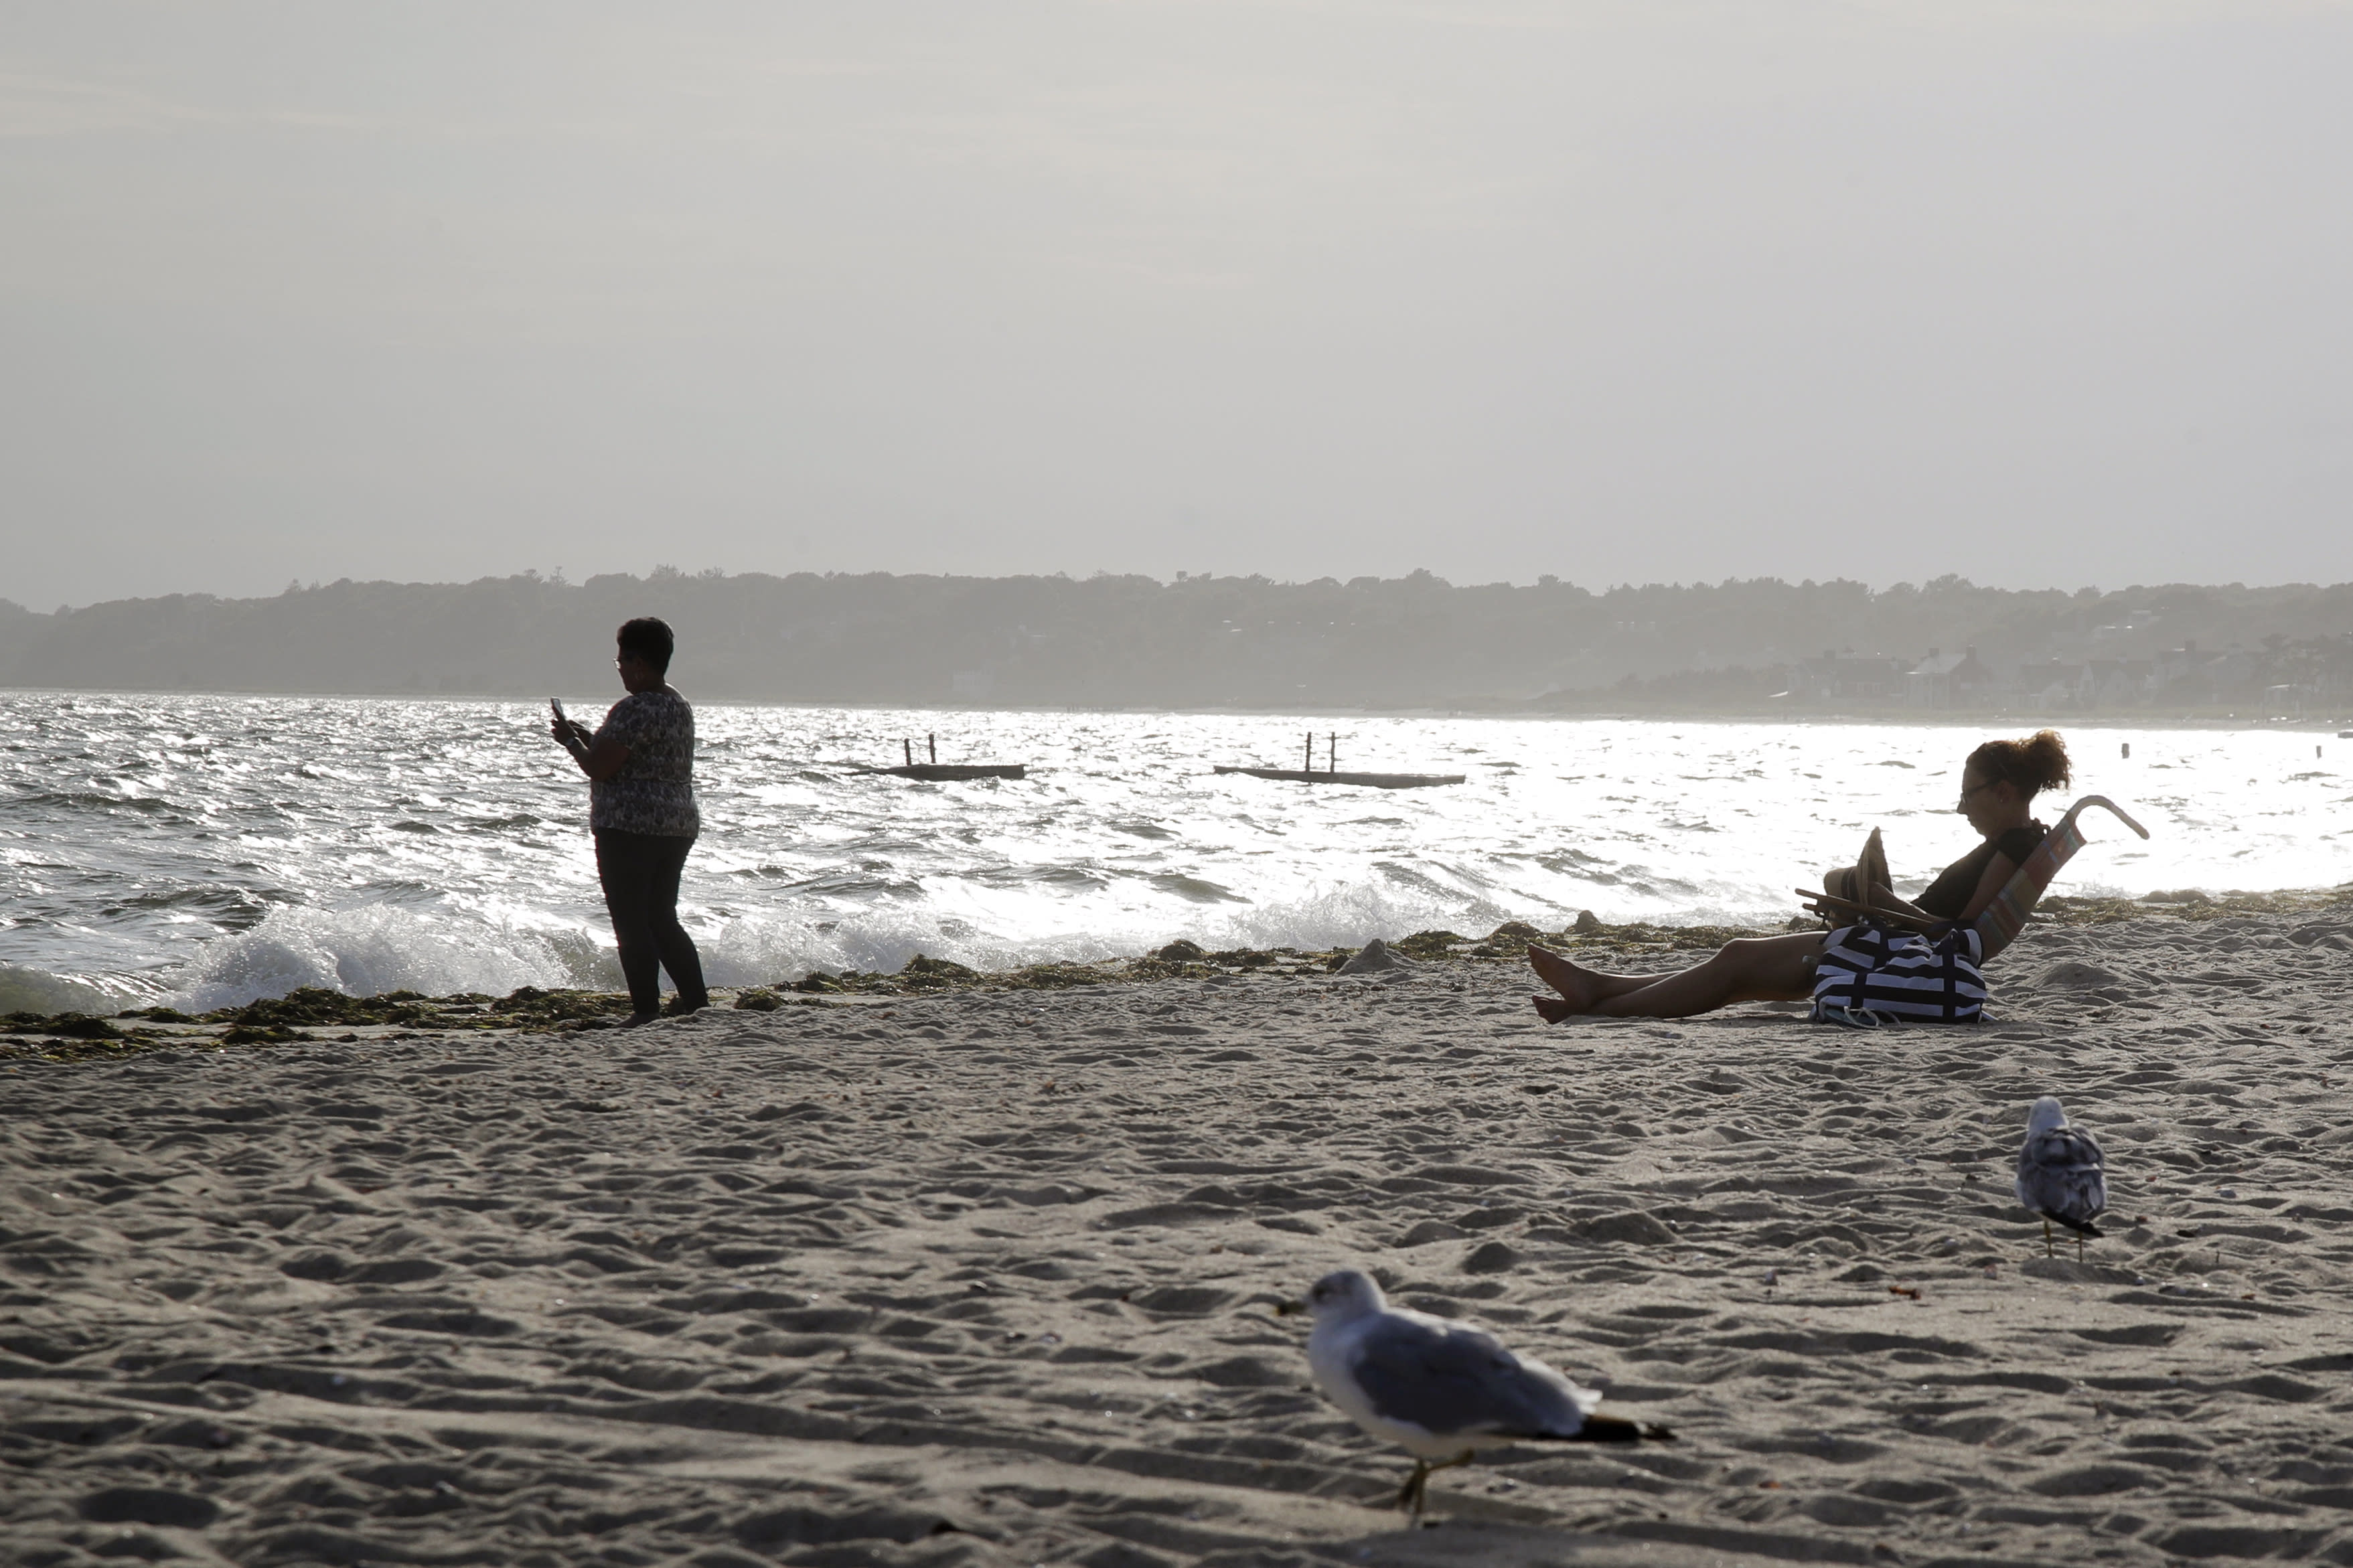 In this Aug. 21, 2019 photo, people enjoy the view at Covell Beach in Centerville, Mass. Vineyard Winds' proposed buried energy cables would stretch from offshore wind turbines, through the ocean, under the sand and parking lot at Covell Beach, to a landing point where the cables would then extend to a grid connection inland. But as Trump has made clear how much he hates wind turbines, all the offshore wind projects, including the nation's first utility-scale offshore wind project, an 84 turbine, $2.8 billion wind farm slated to rise 15 miles off Martha's Vineyard, have stalled. (AP Photo/Elise Amendola)